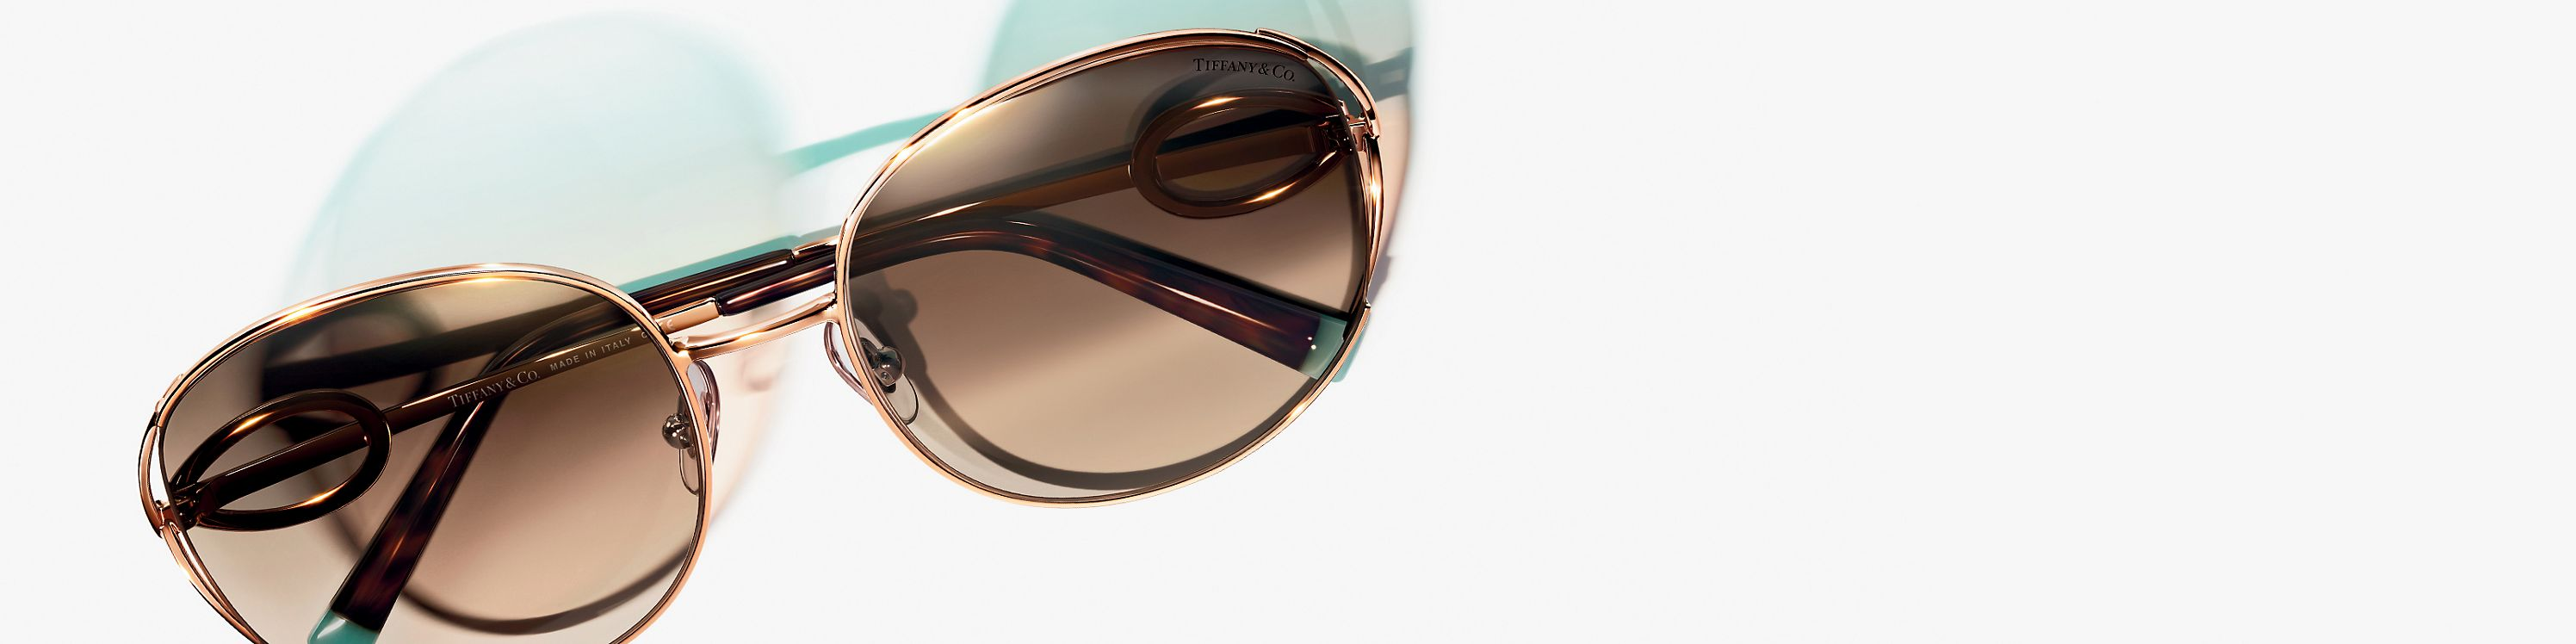 5d9621bf8829 Eyewear & Sunglasses | Tiffany & Co.